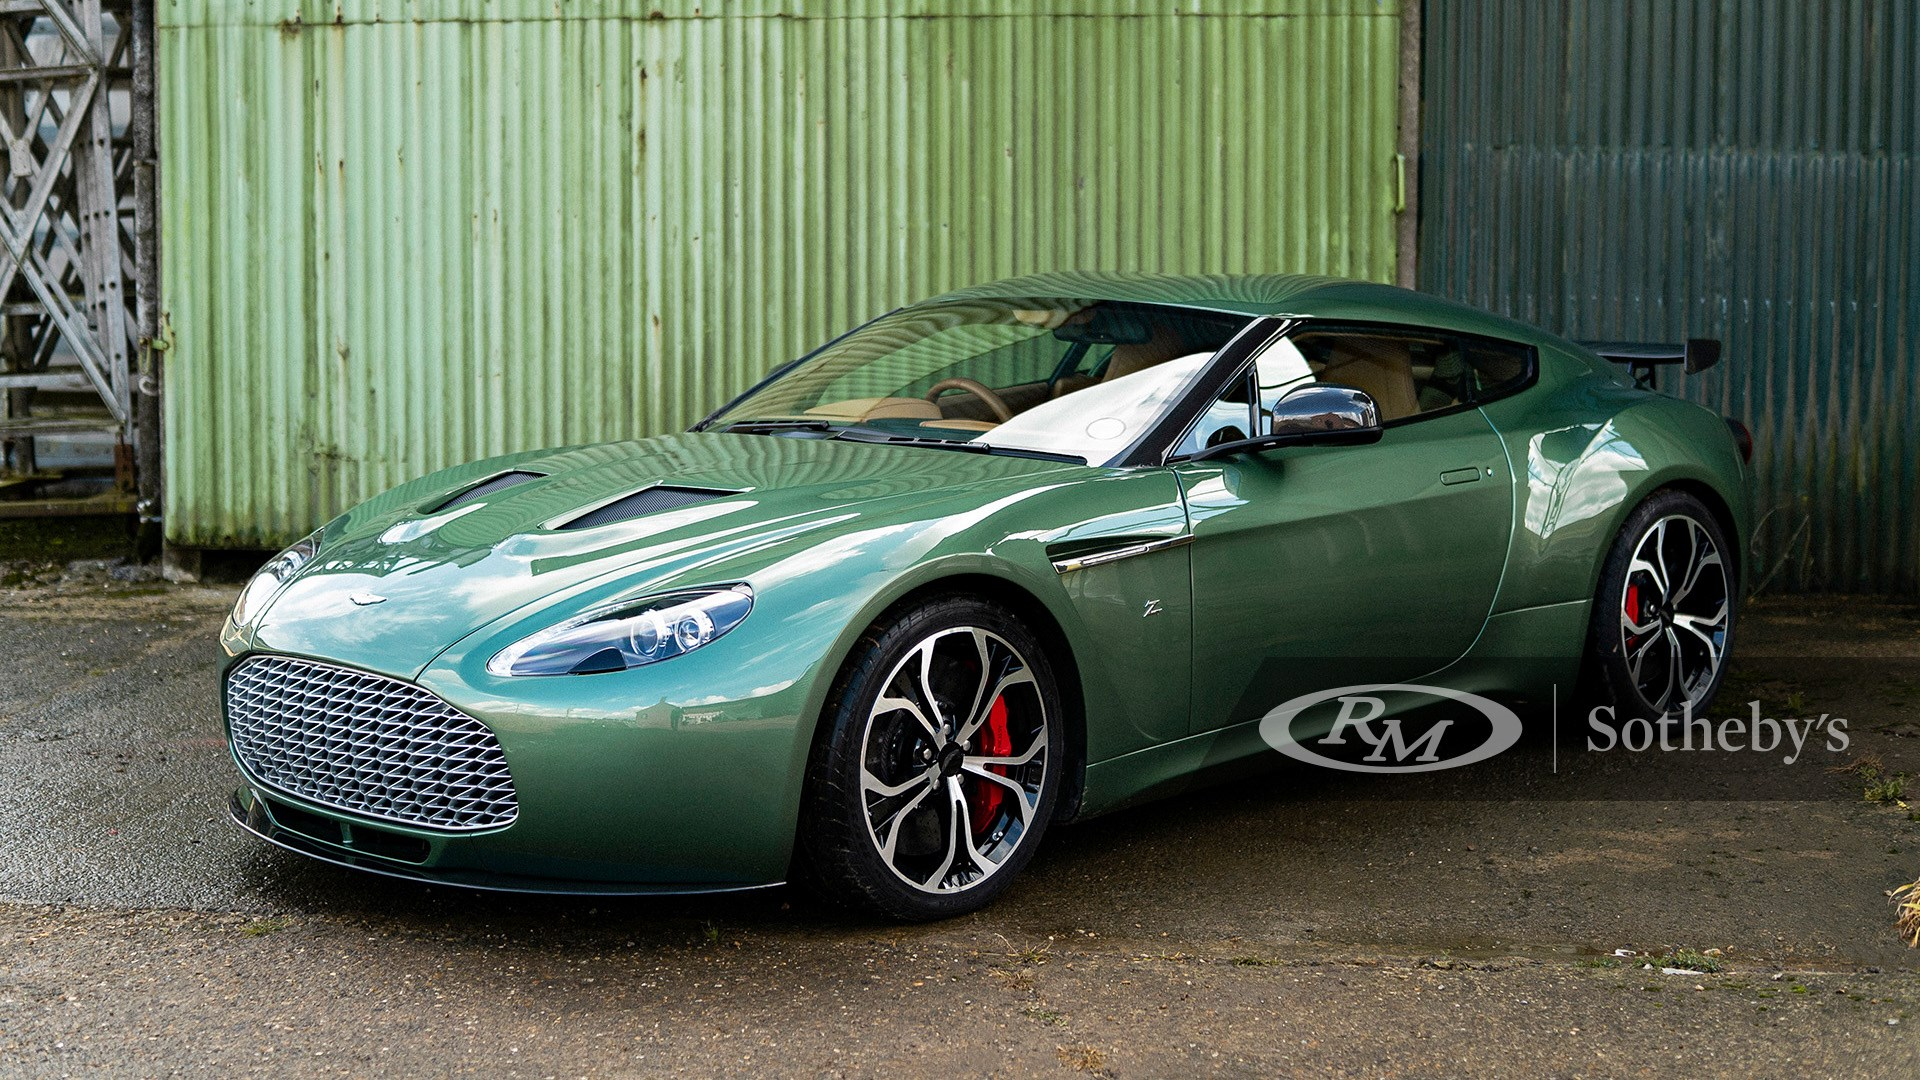 RM Sotheby's London 2020, Blog, 2012 Aston Martin V12 Zagato Prototype